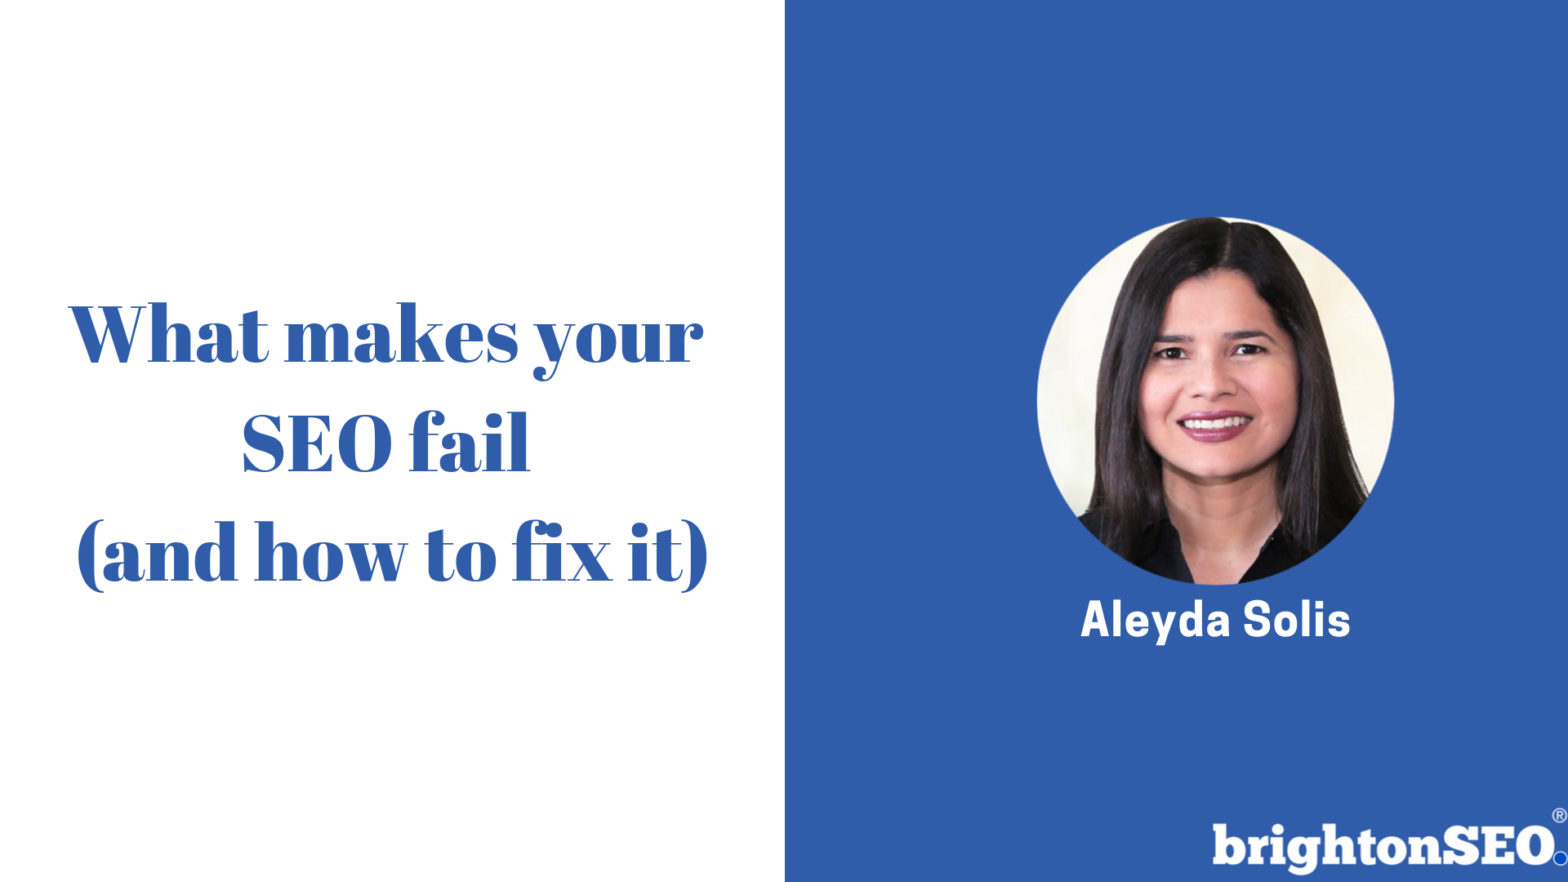 What makes your SEO fail (and how to fix it)